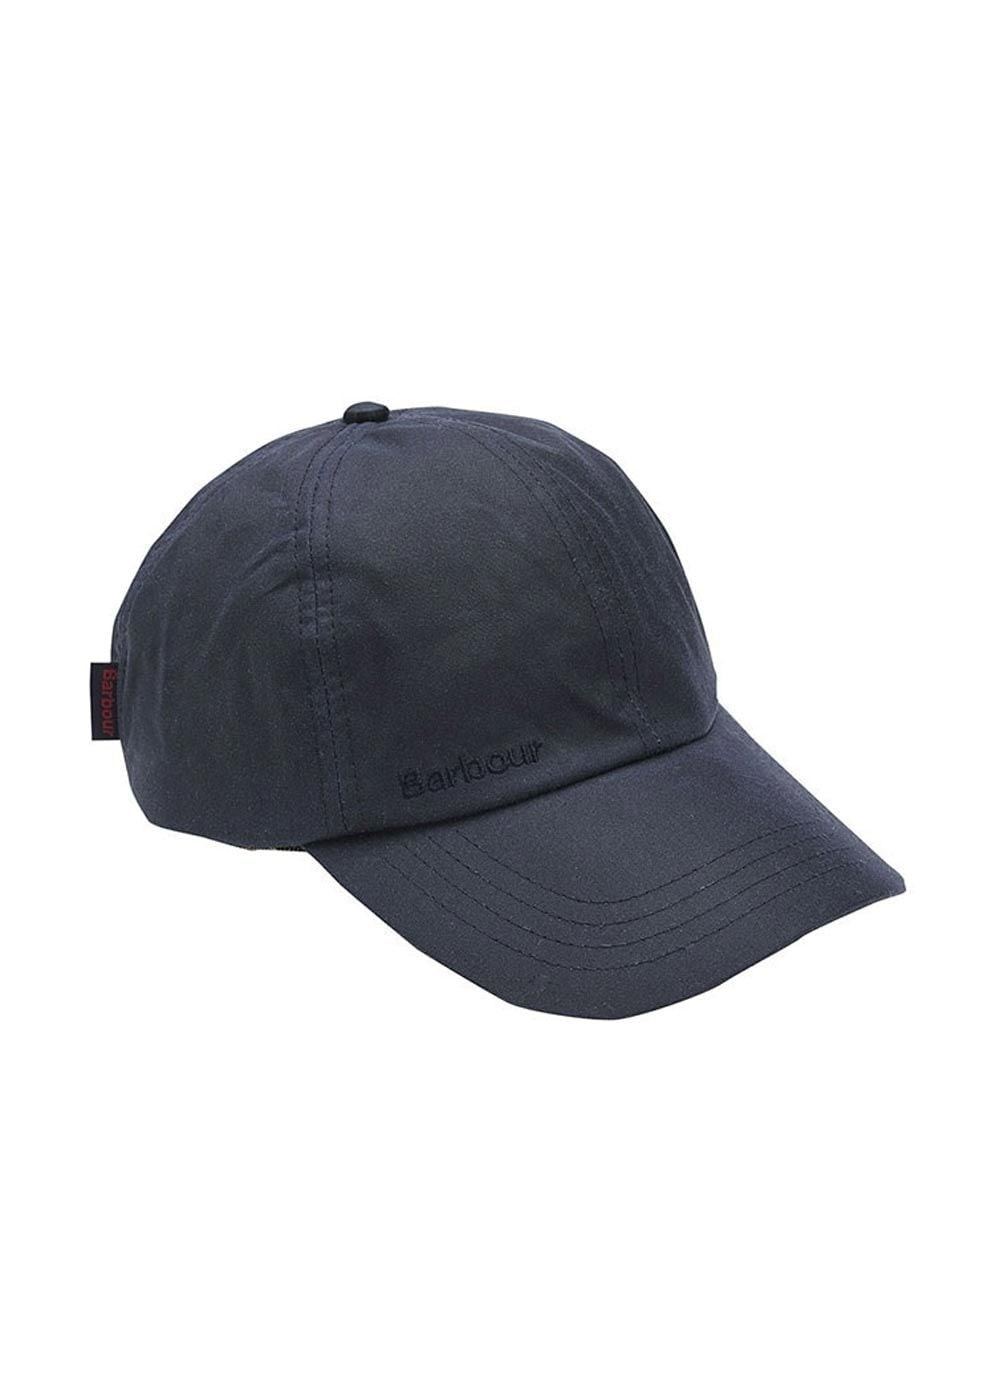 Barbour Wax Sports Cap - Mens from A Hume UK c29e815f6cea